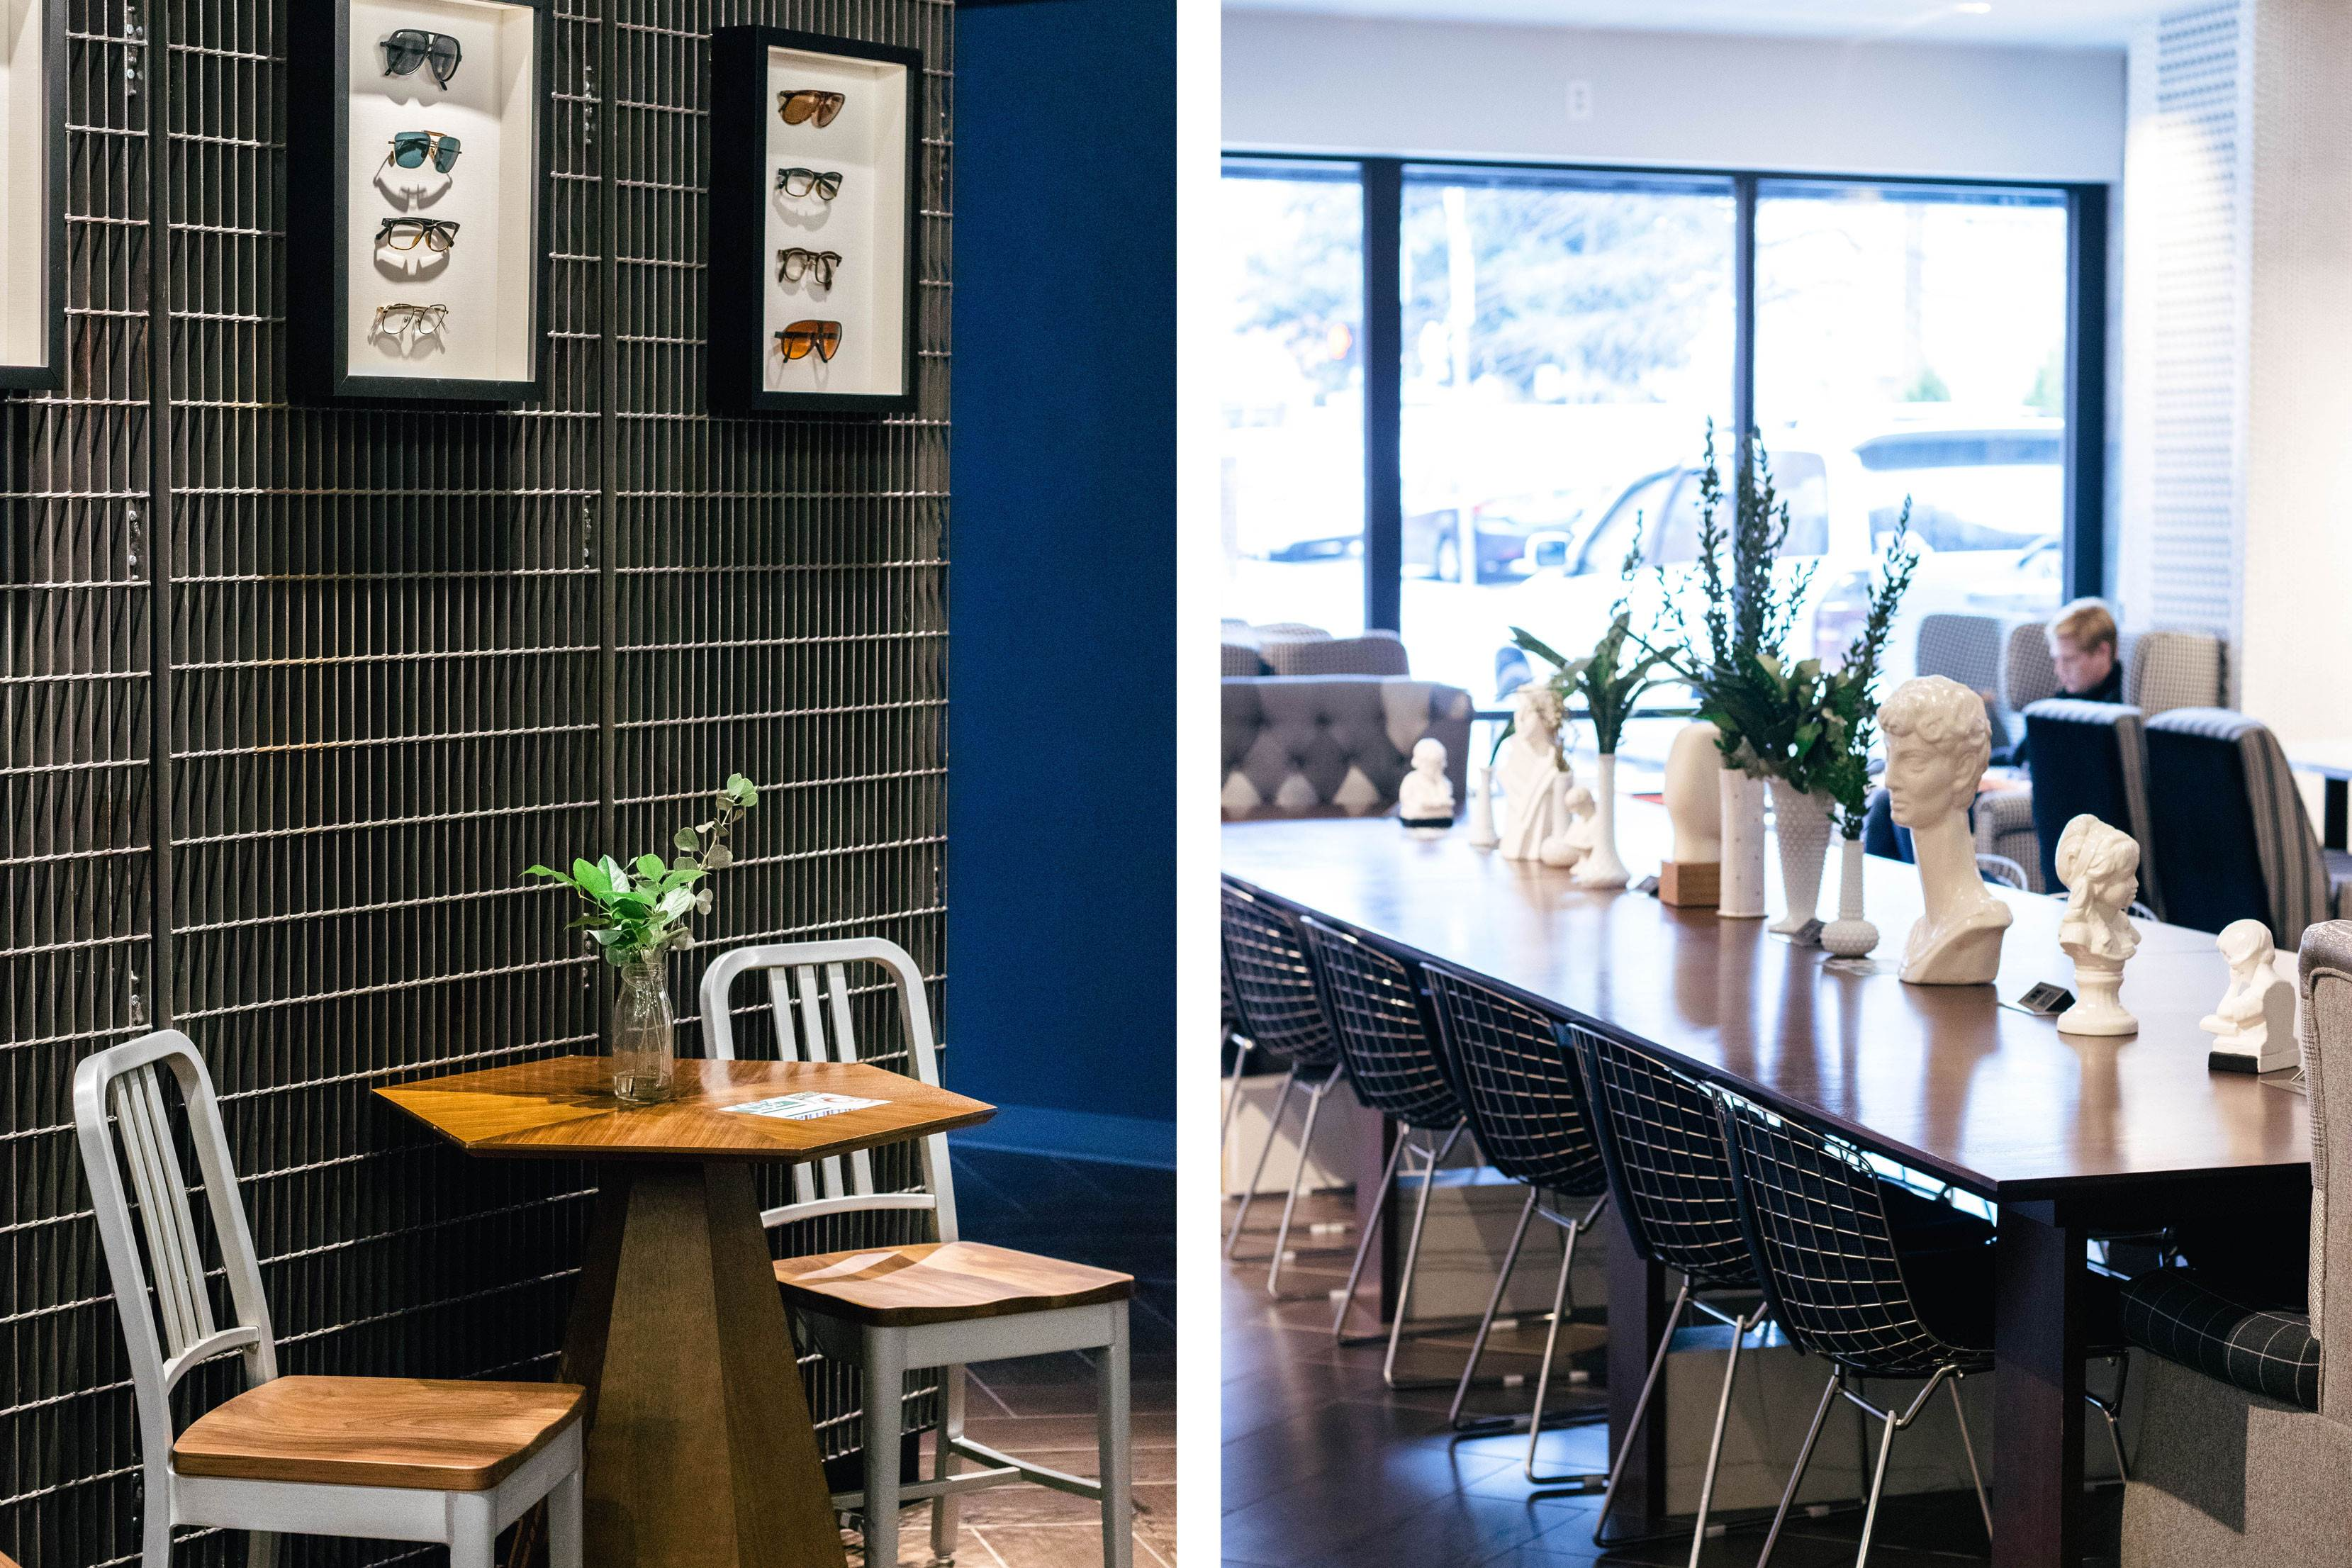 A Review of Graduate Richmond + 5 Reasons You Should Book a Staycation